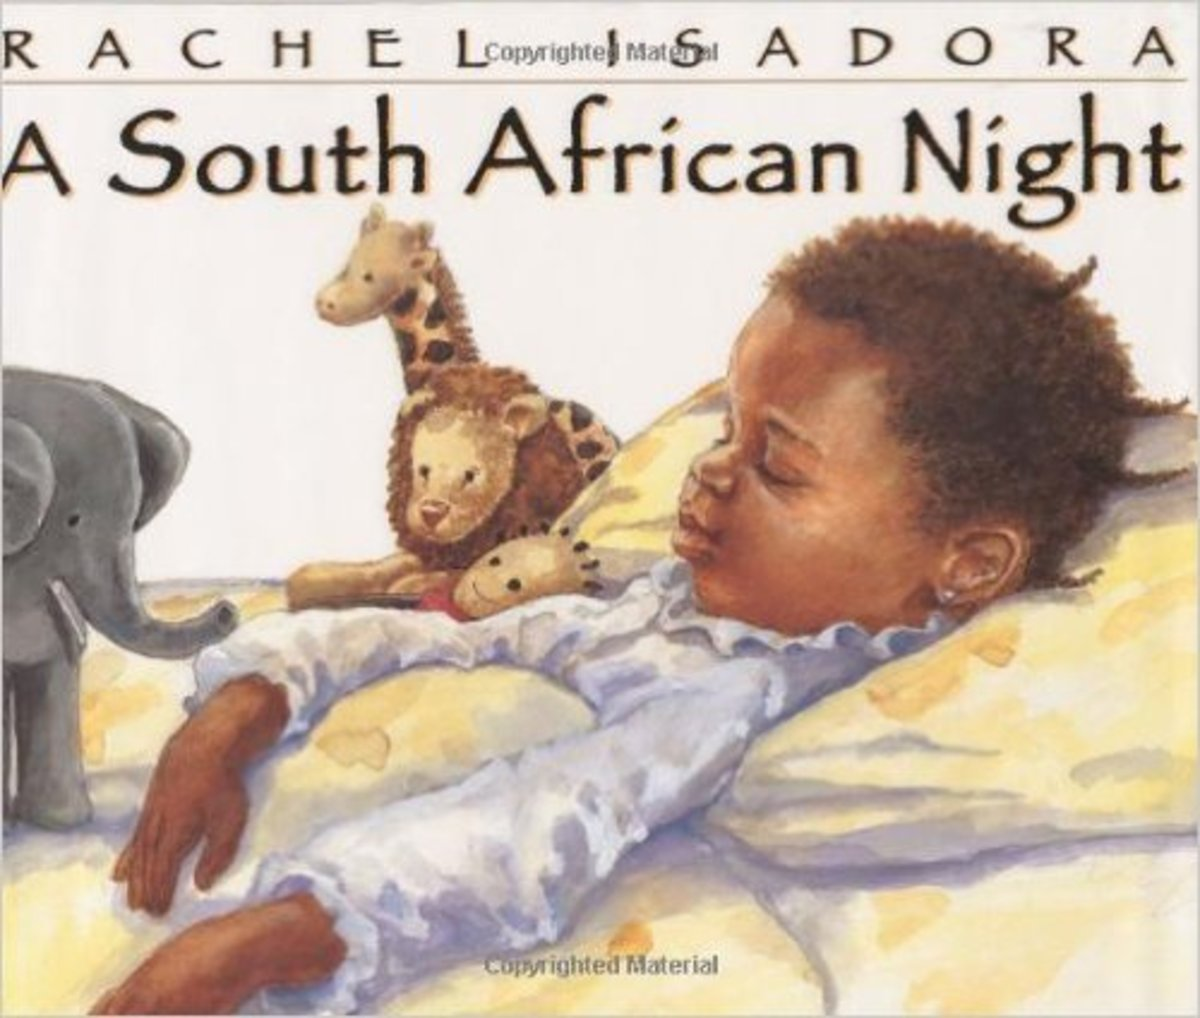 A South African Night Hardcover – April 14, 1998 by Rachel Isadora - All images are from amazon.com .